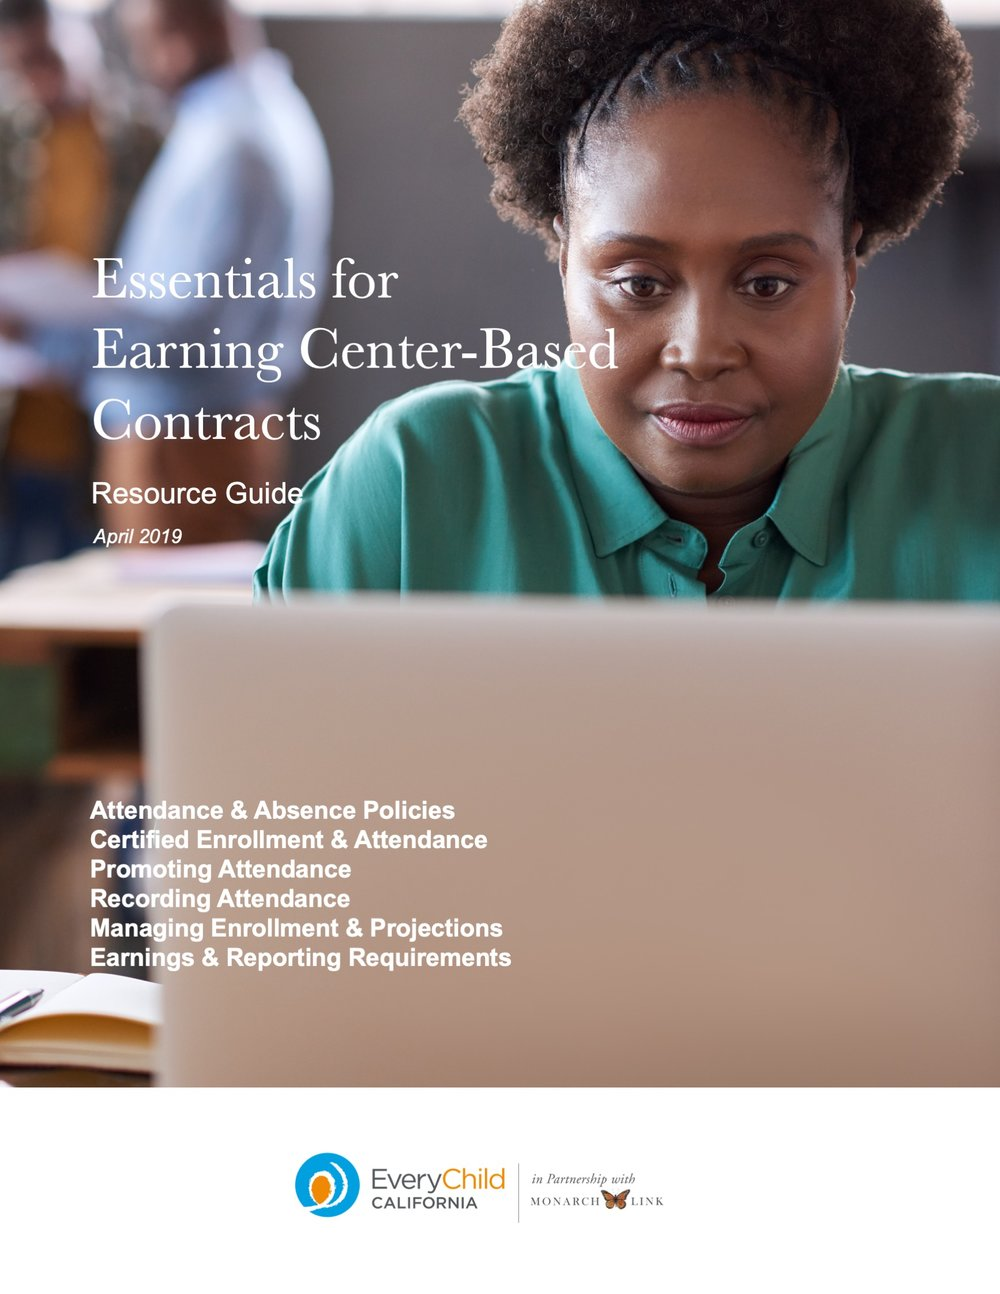 Resource Guide - Tool for self-paced new employee trainings, live trainings & as a day-to-day desk reference manual.